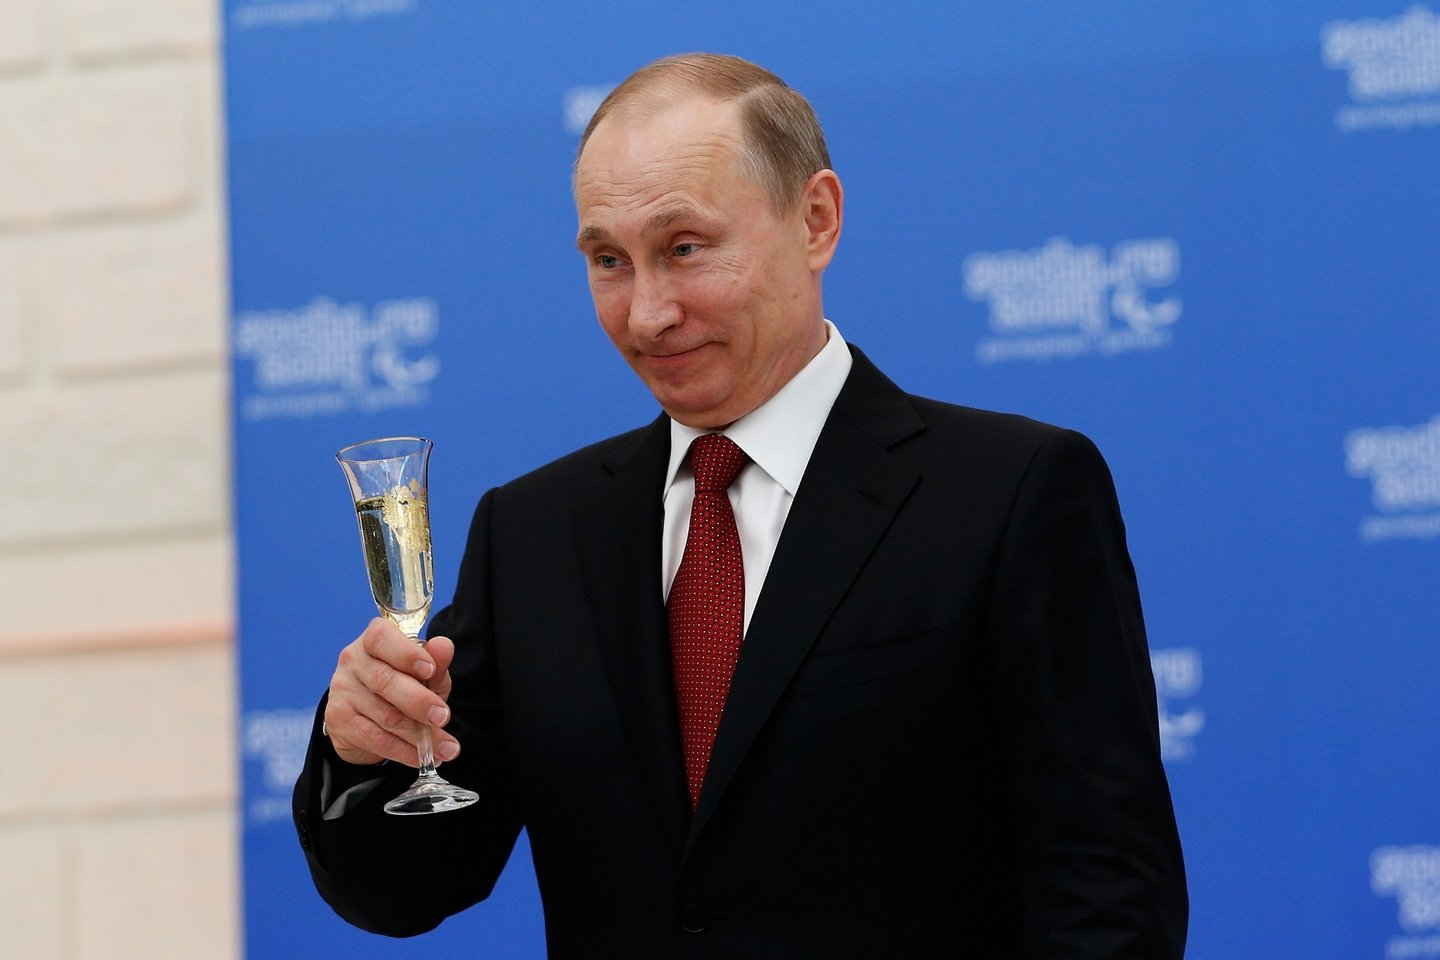 SOCHI, RUSSIA - MARCH 13: Russian President Vladimir Putin holds a glass of champagne during a lunch hosted by the office of the Russian President Vladimir Putin for the Presidents of the International Paralympic Committee member organisations during the 2014 Sochi Paralympic Games on March 13, 2014 in Sochi, Russia.  (Photo by Harry Engels/Getty Images)